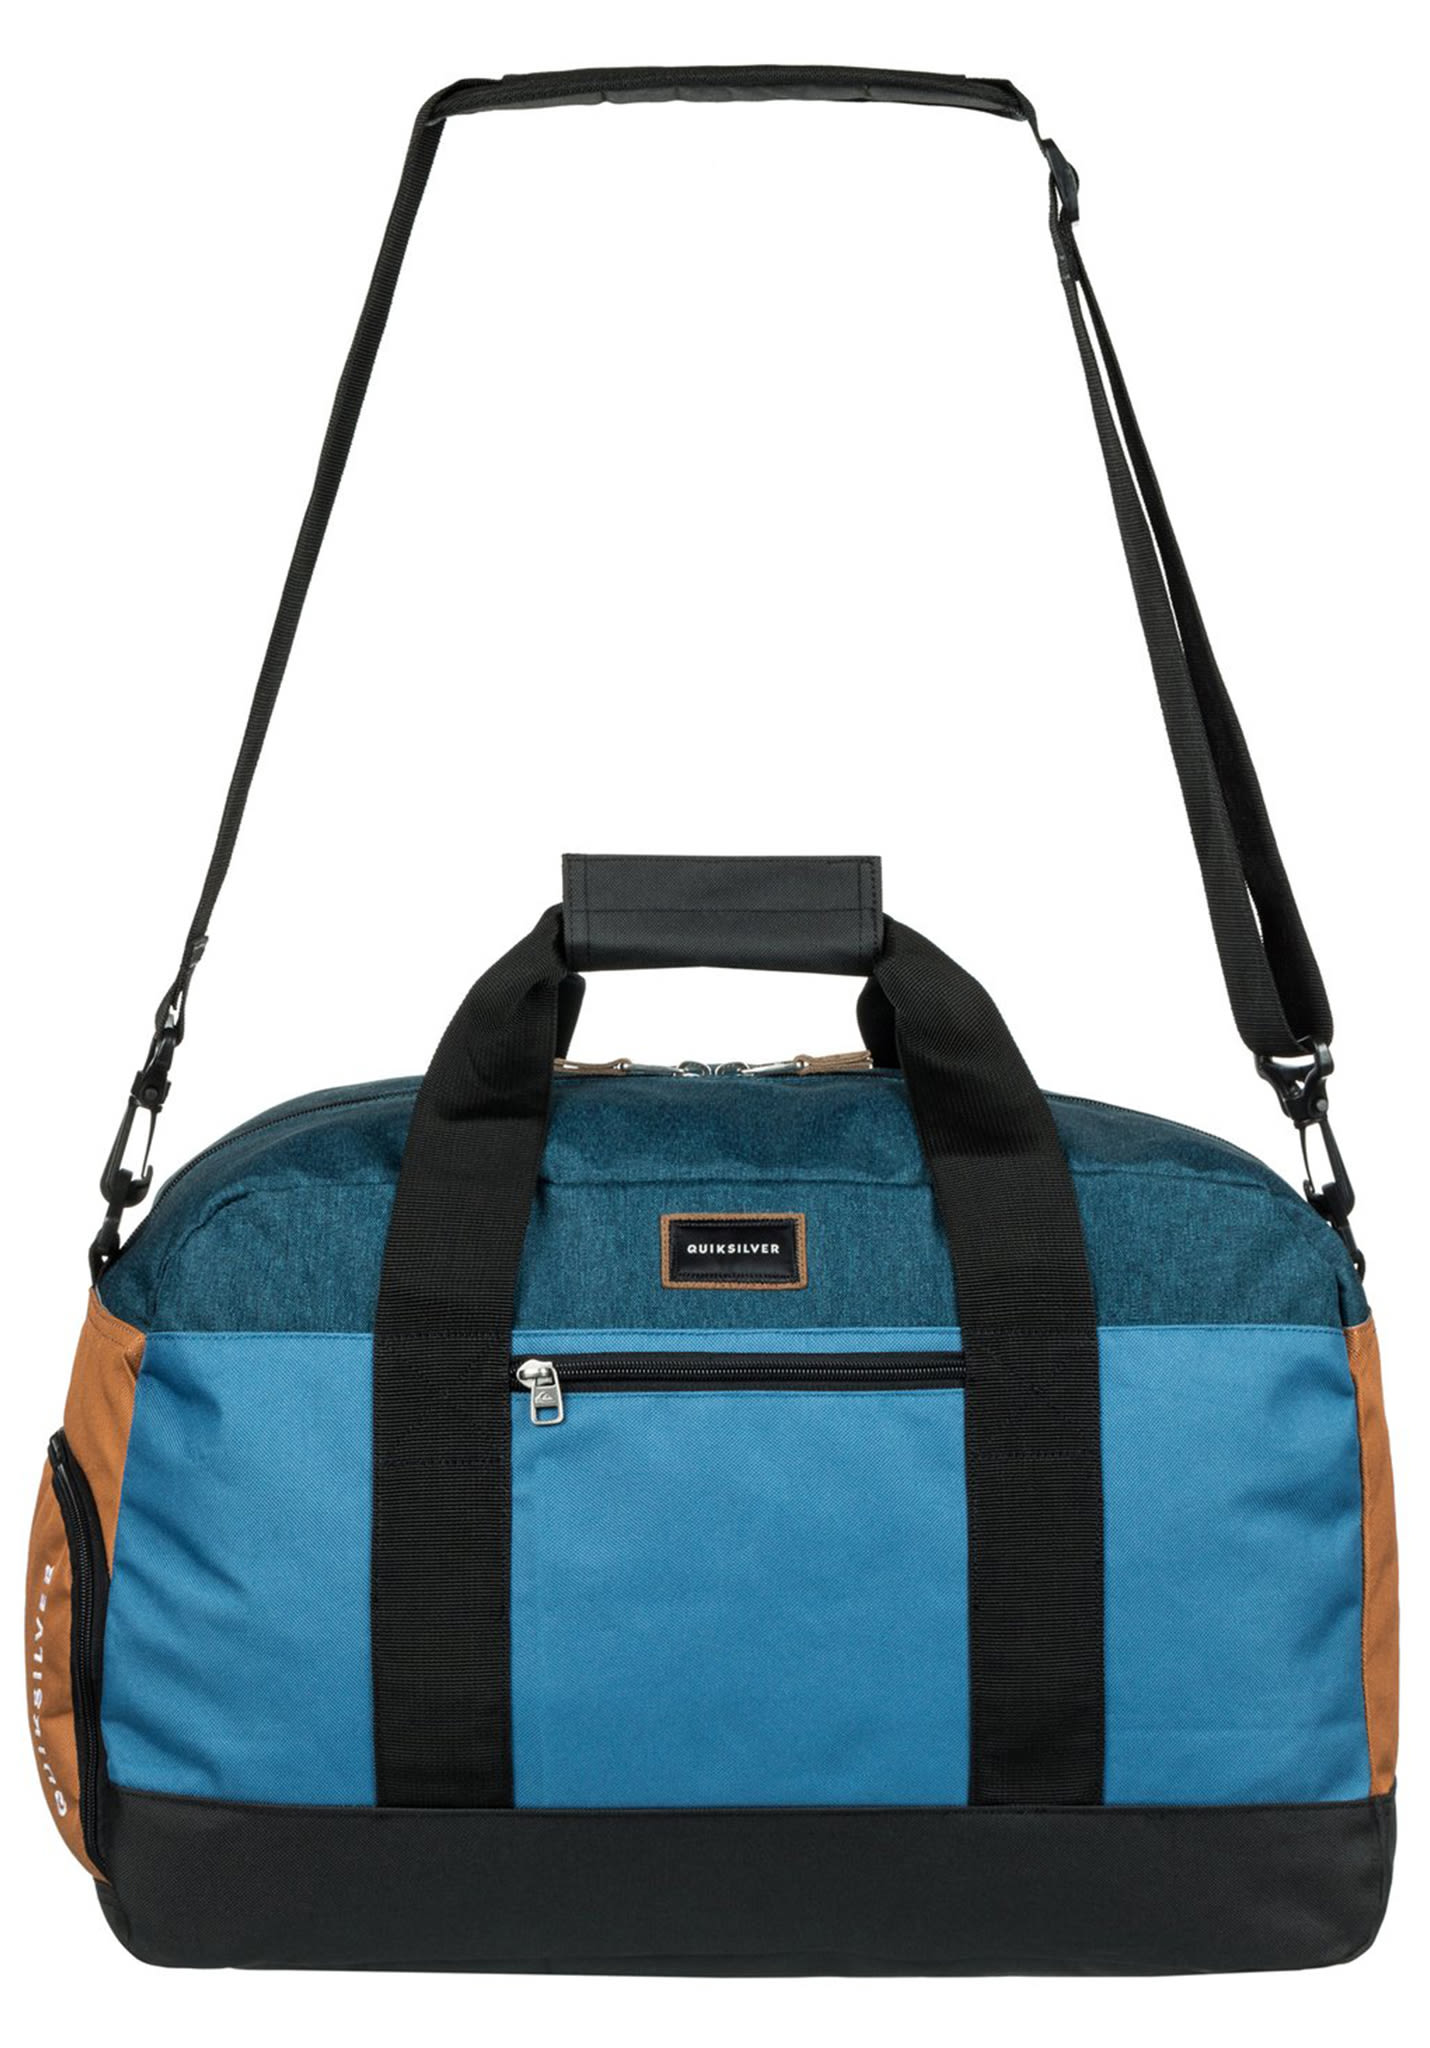 caa4dcf33 Quiksilver Medium Shelter - Gym Bag for Men - Blue - Planet Sports